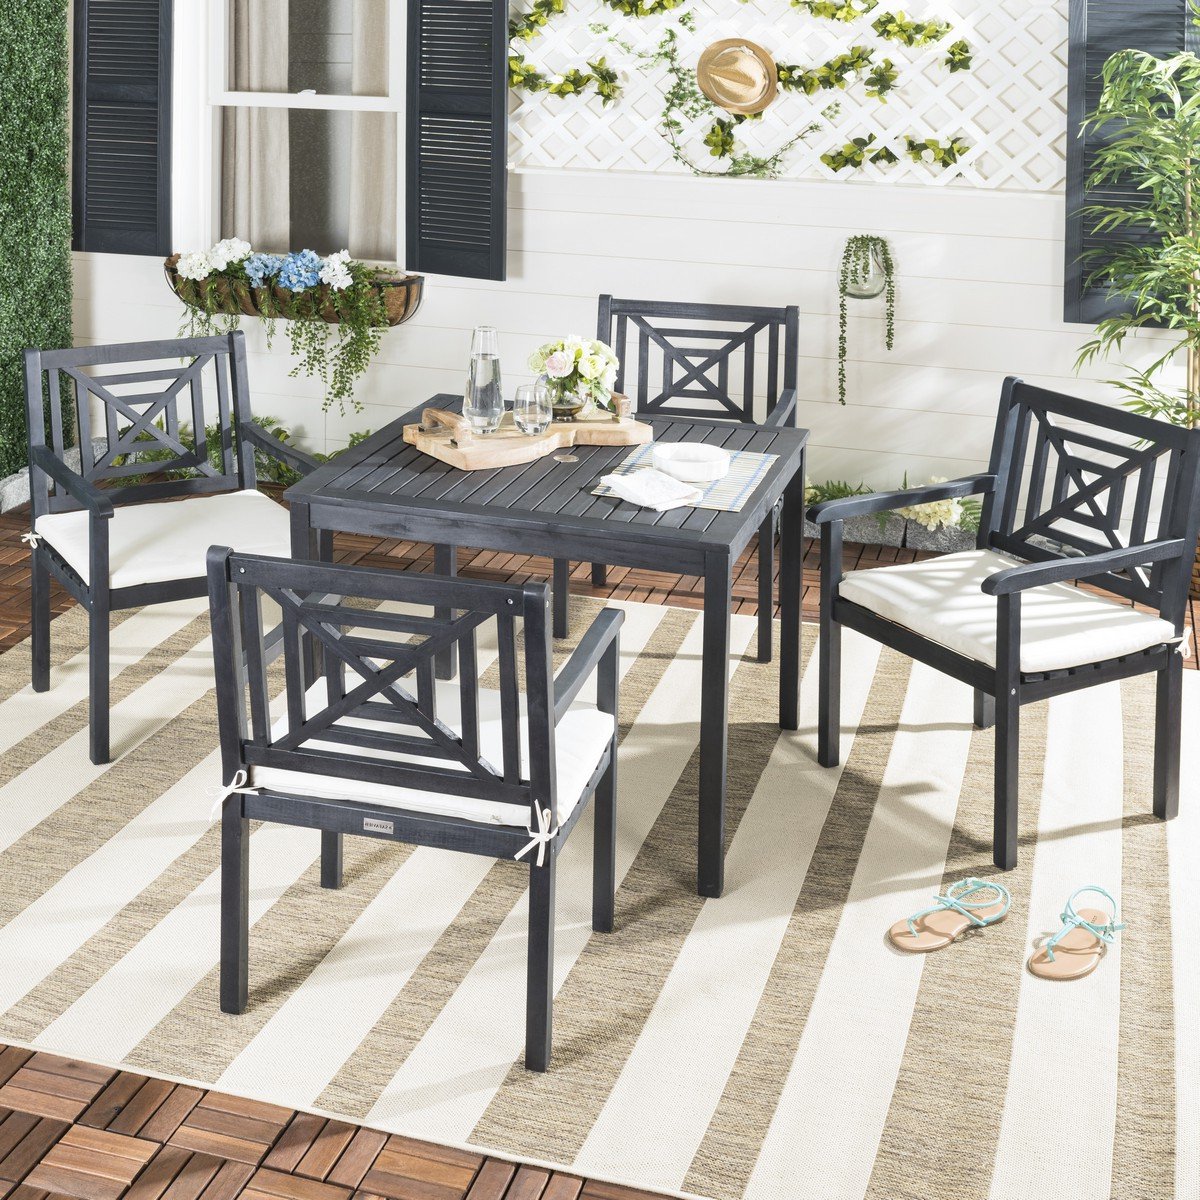 Pat6722K Patio Sets – 5 Piece Outdoor Dining Sets – Furniture Within Most Up To Date Delmar 5 Piece Dining Sets (View 15 of 25)